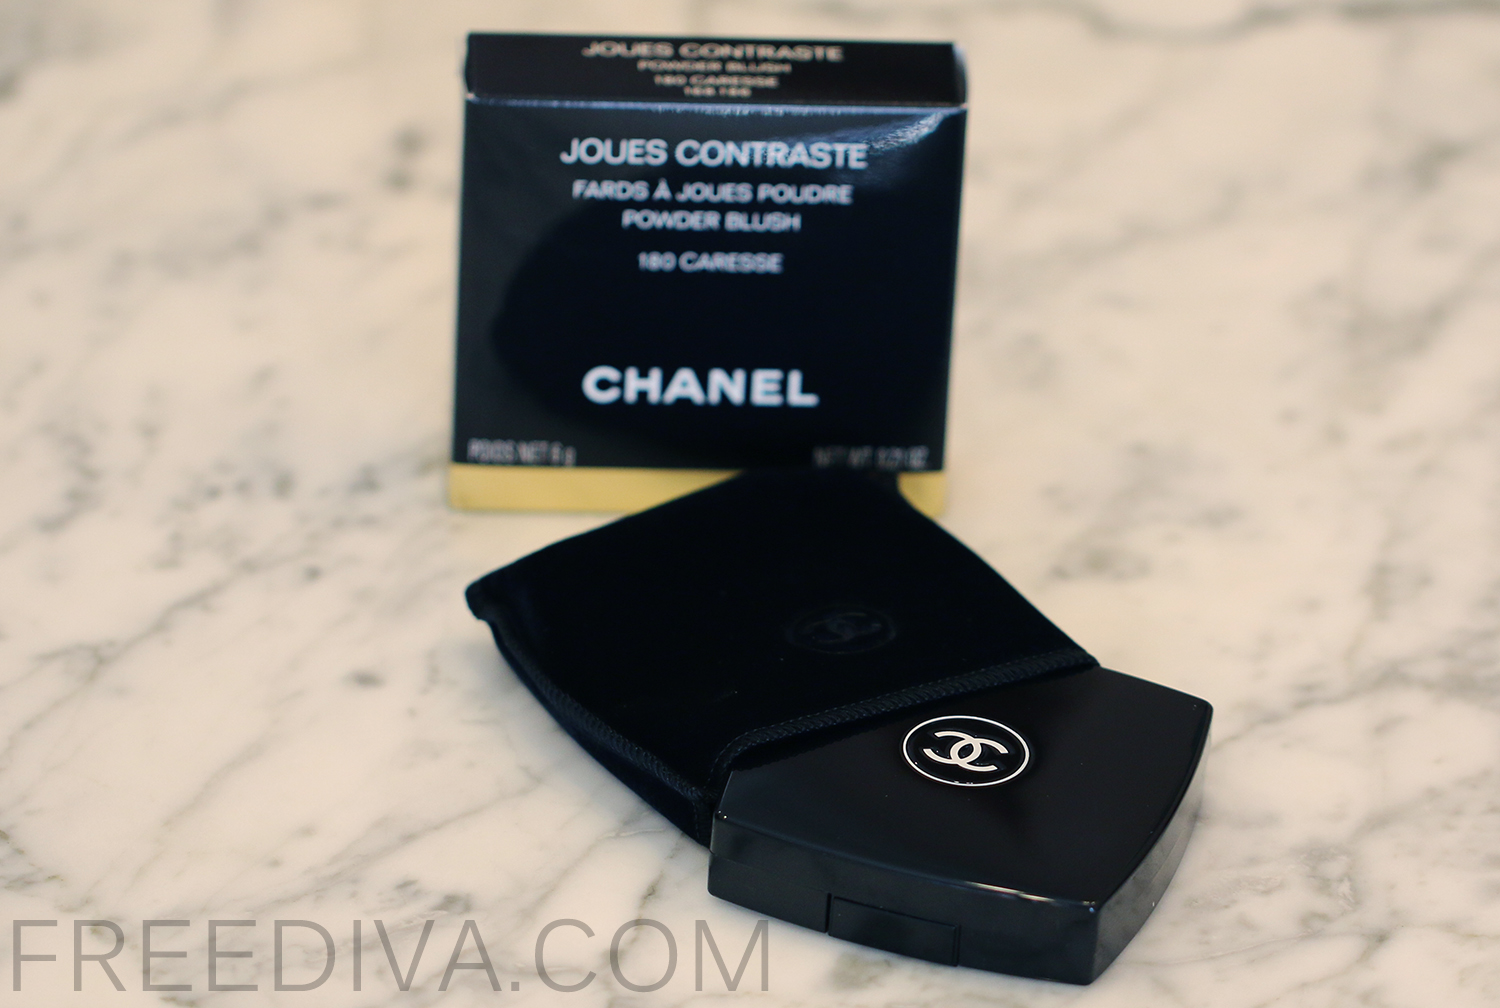 Chanel Powder Blush, 180 Caresse, Holiday 2014